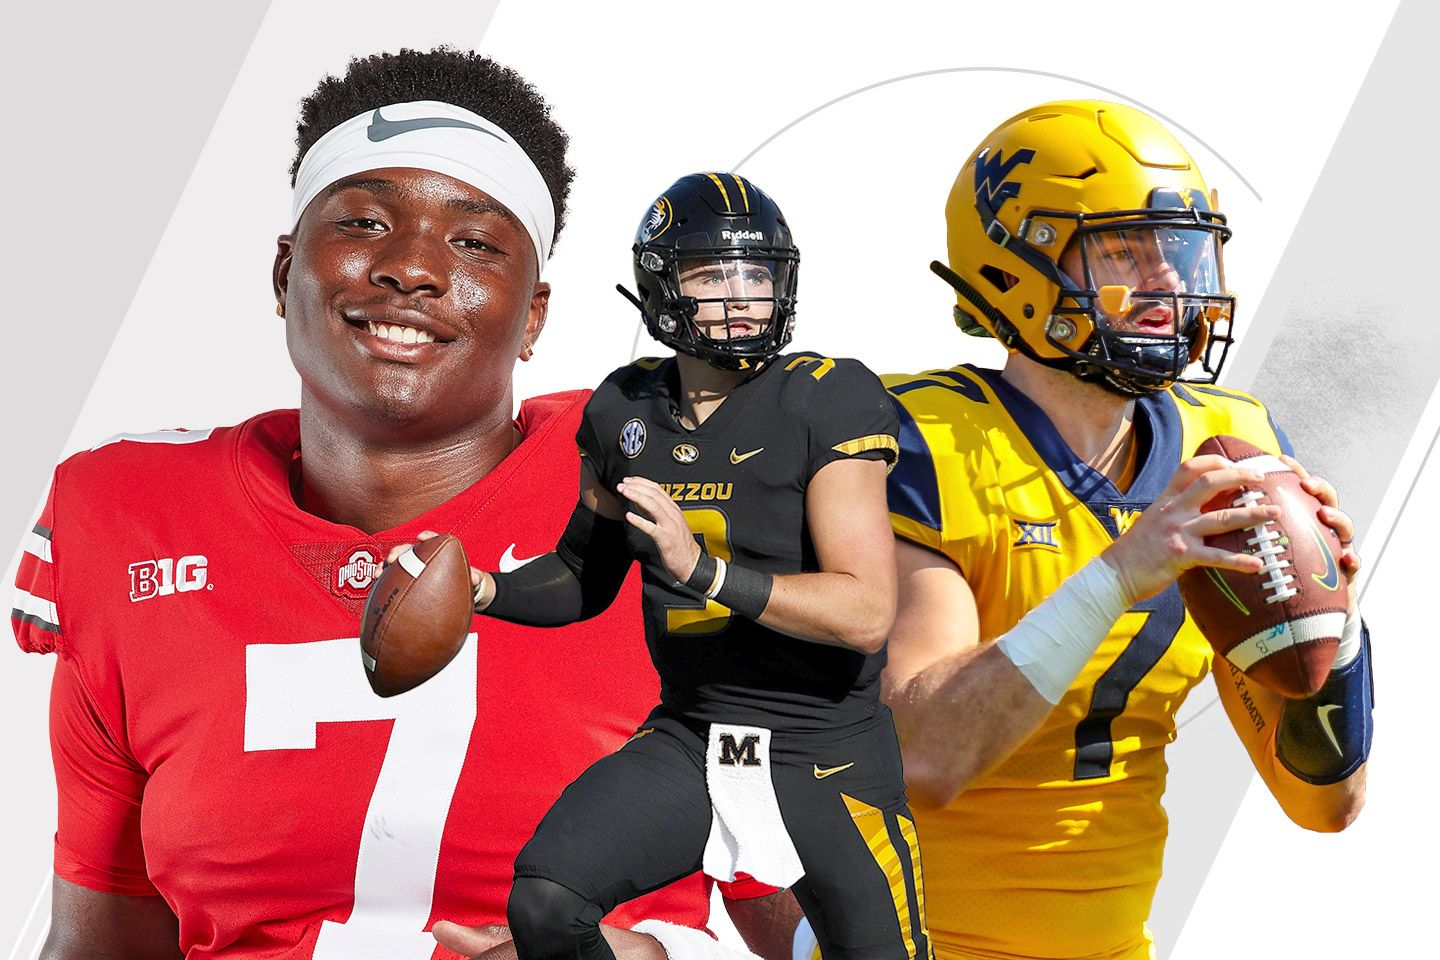 Meet the 2019 NFL draft quarterback class - Everything you need to know 1d062dc199